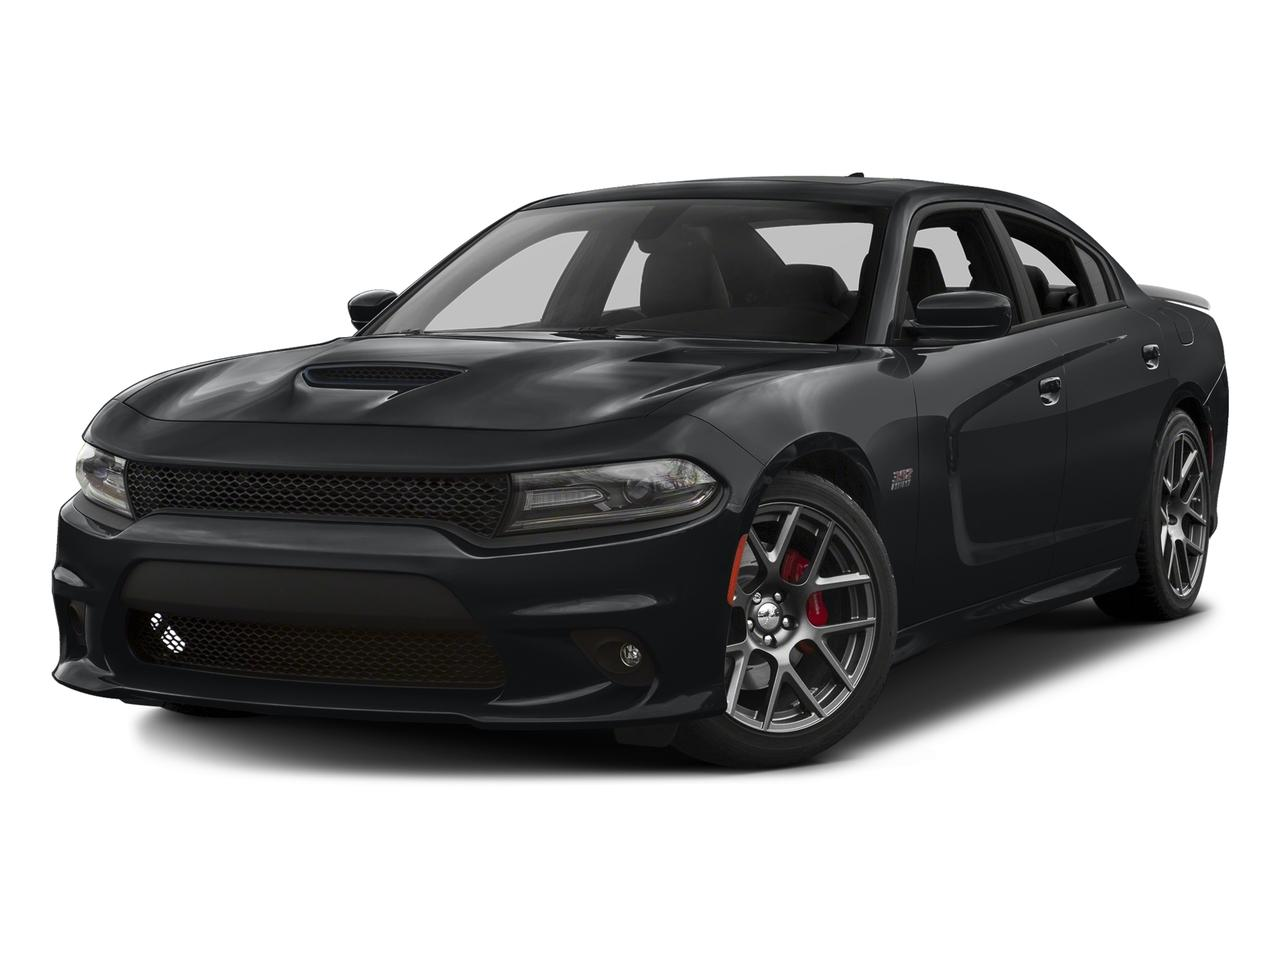 2017 Dodge Charger Vehicle Photo in Colma, CA 94014